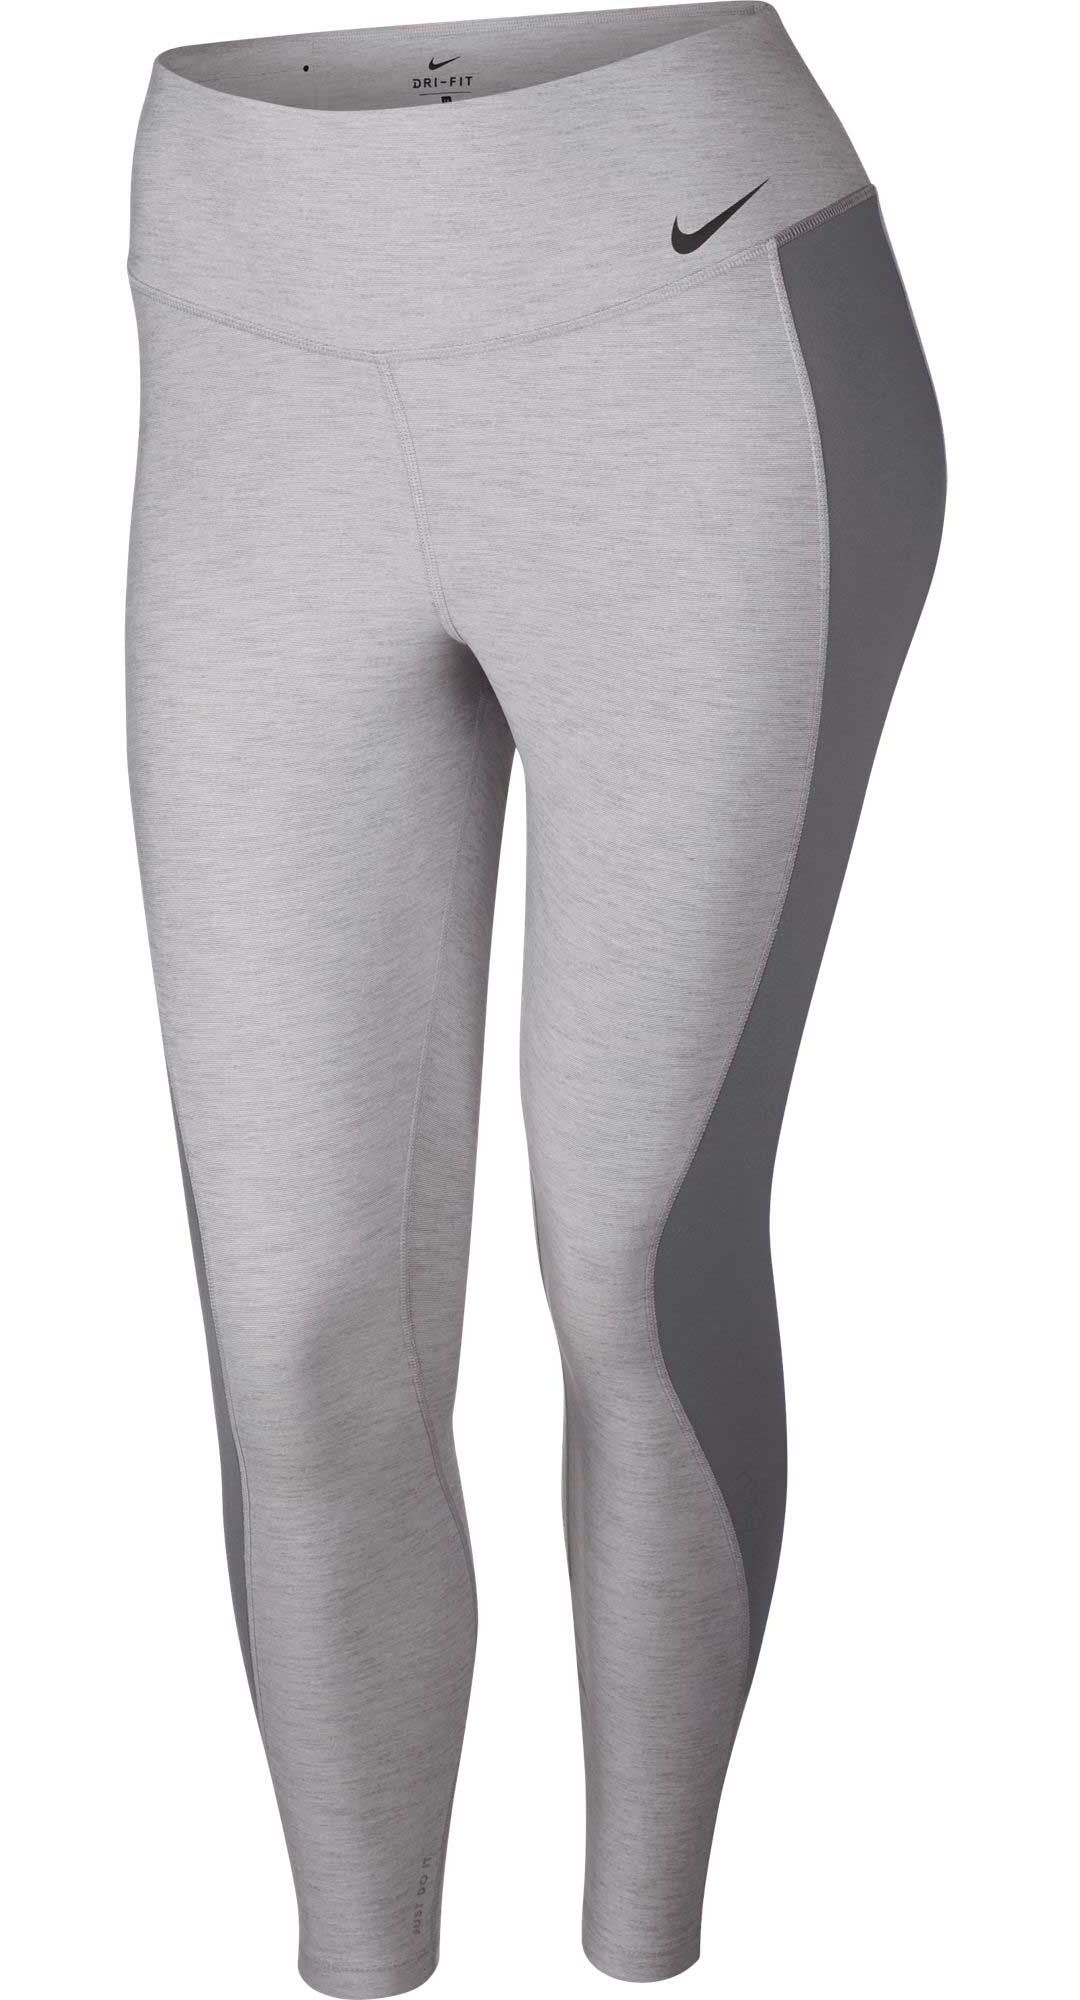 d0877e6fe4159 Nike Women's Plus Size Power Legend Training Tights. noImageFound. Previous